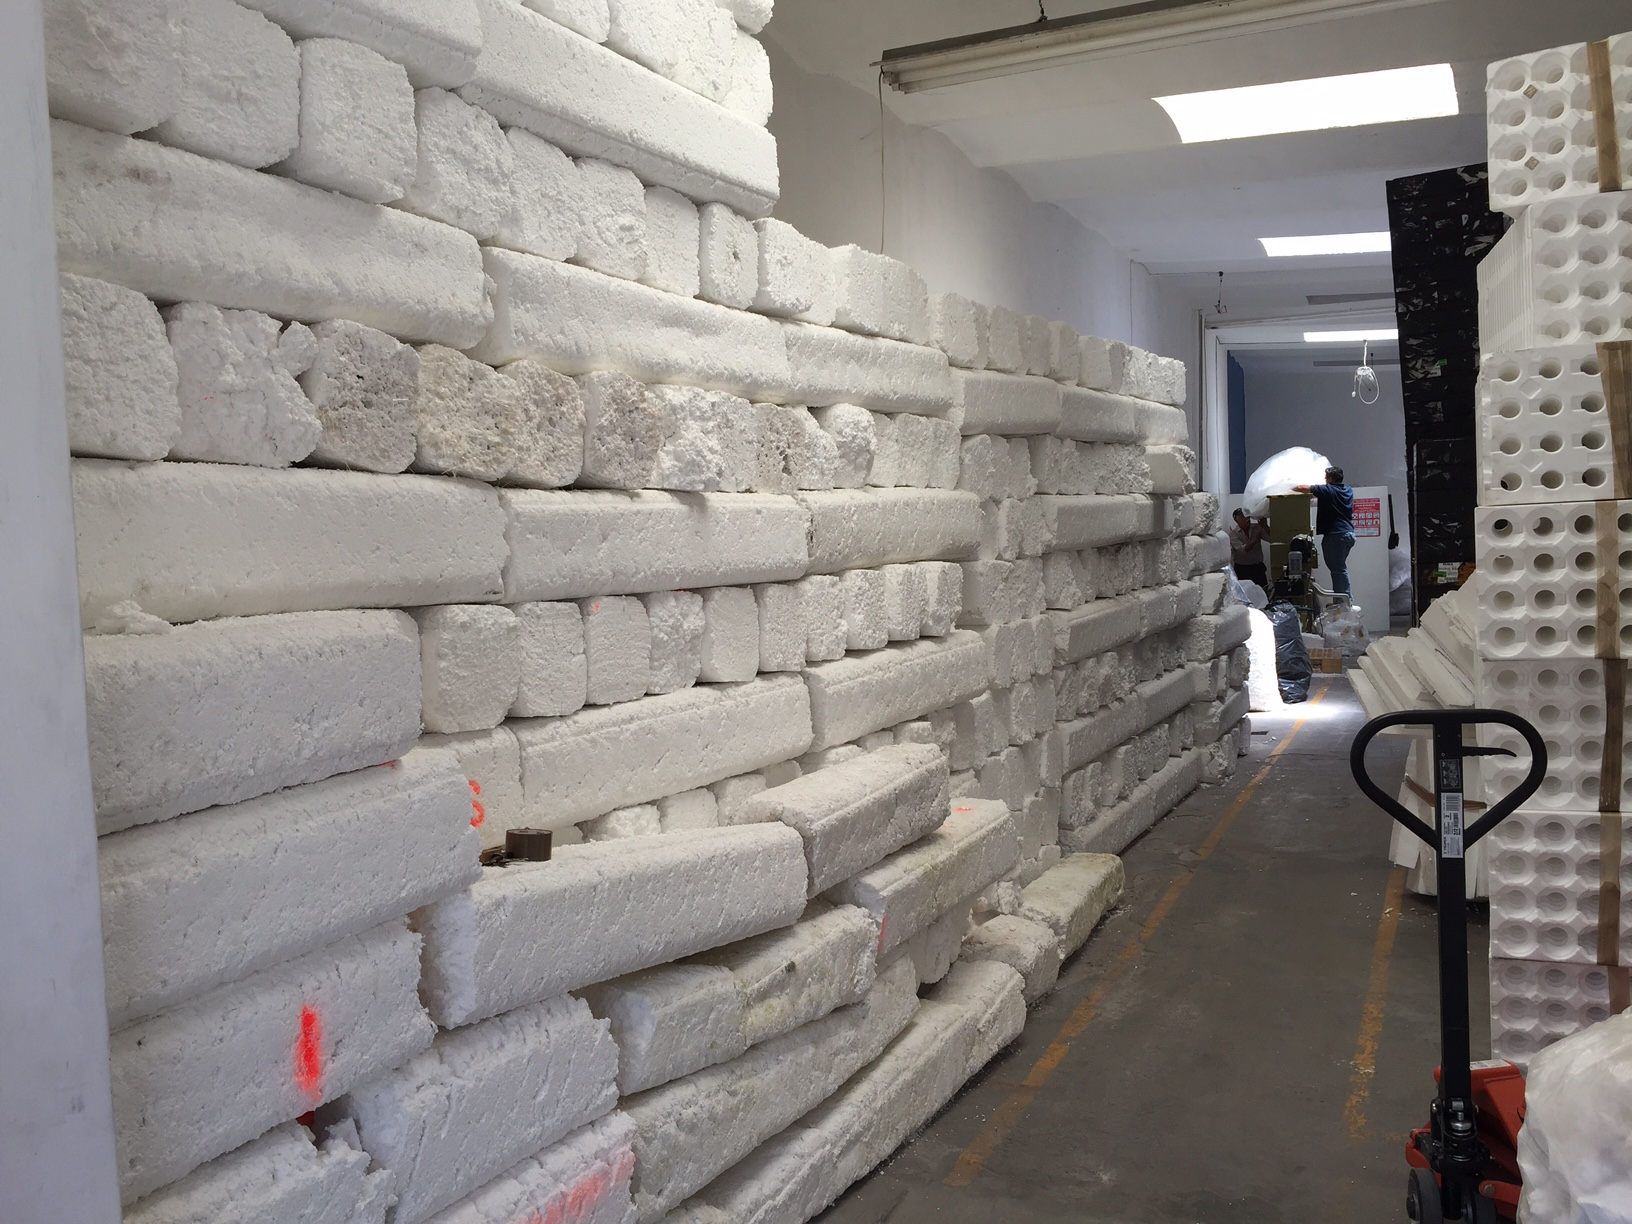 Waste styrofoam densifiers for Styrofoam block walls